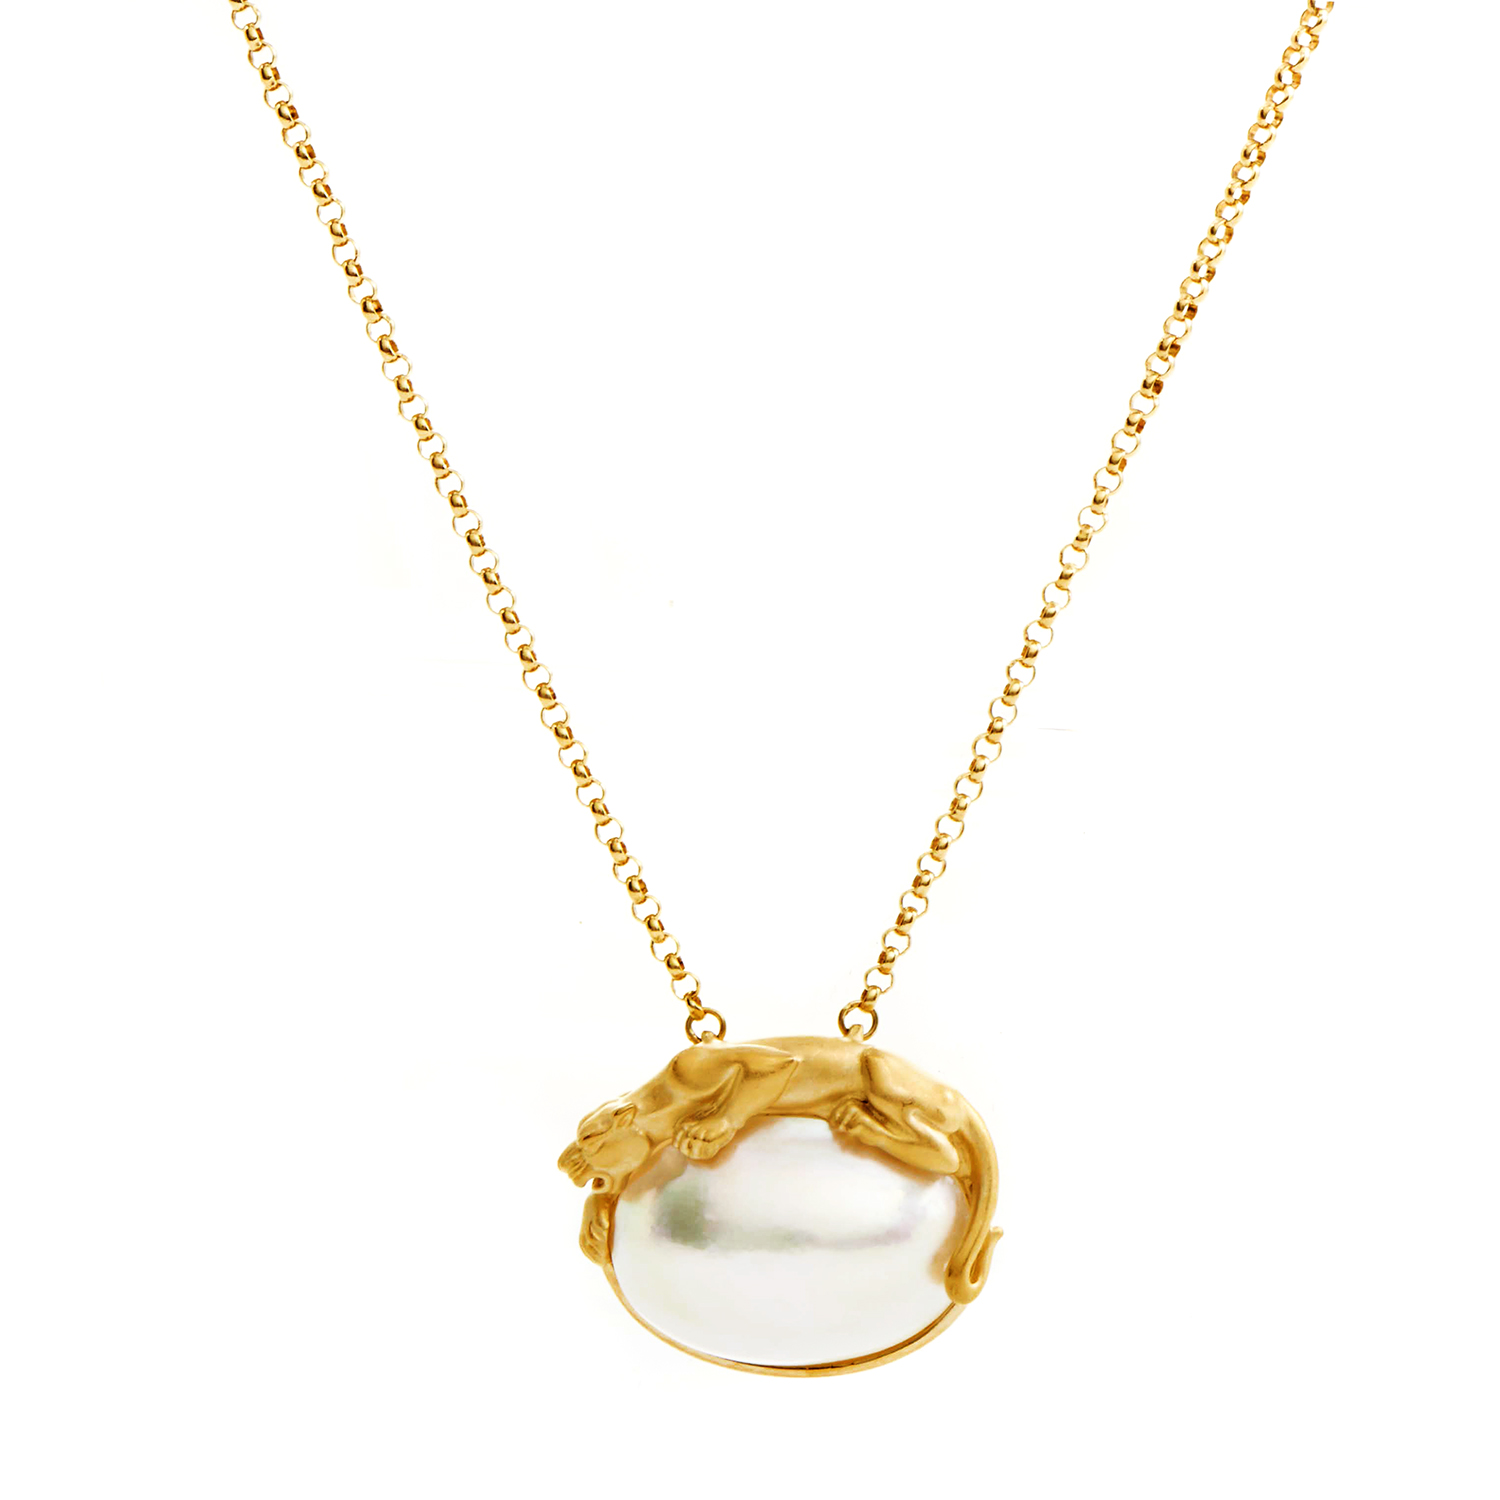 Carrera y Carrera Women's 18K Yellow Gold Mabe Pearl Panther Pendant Necklace